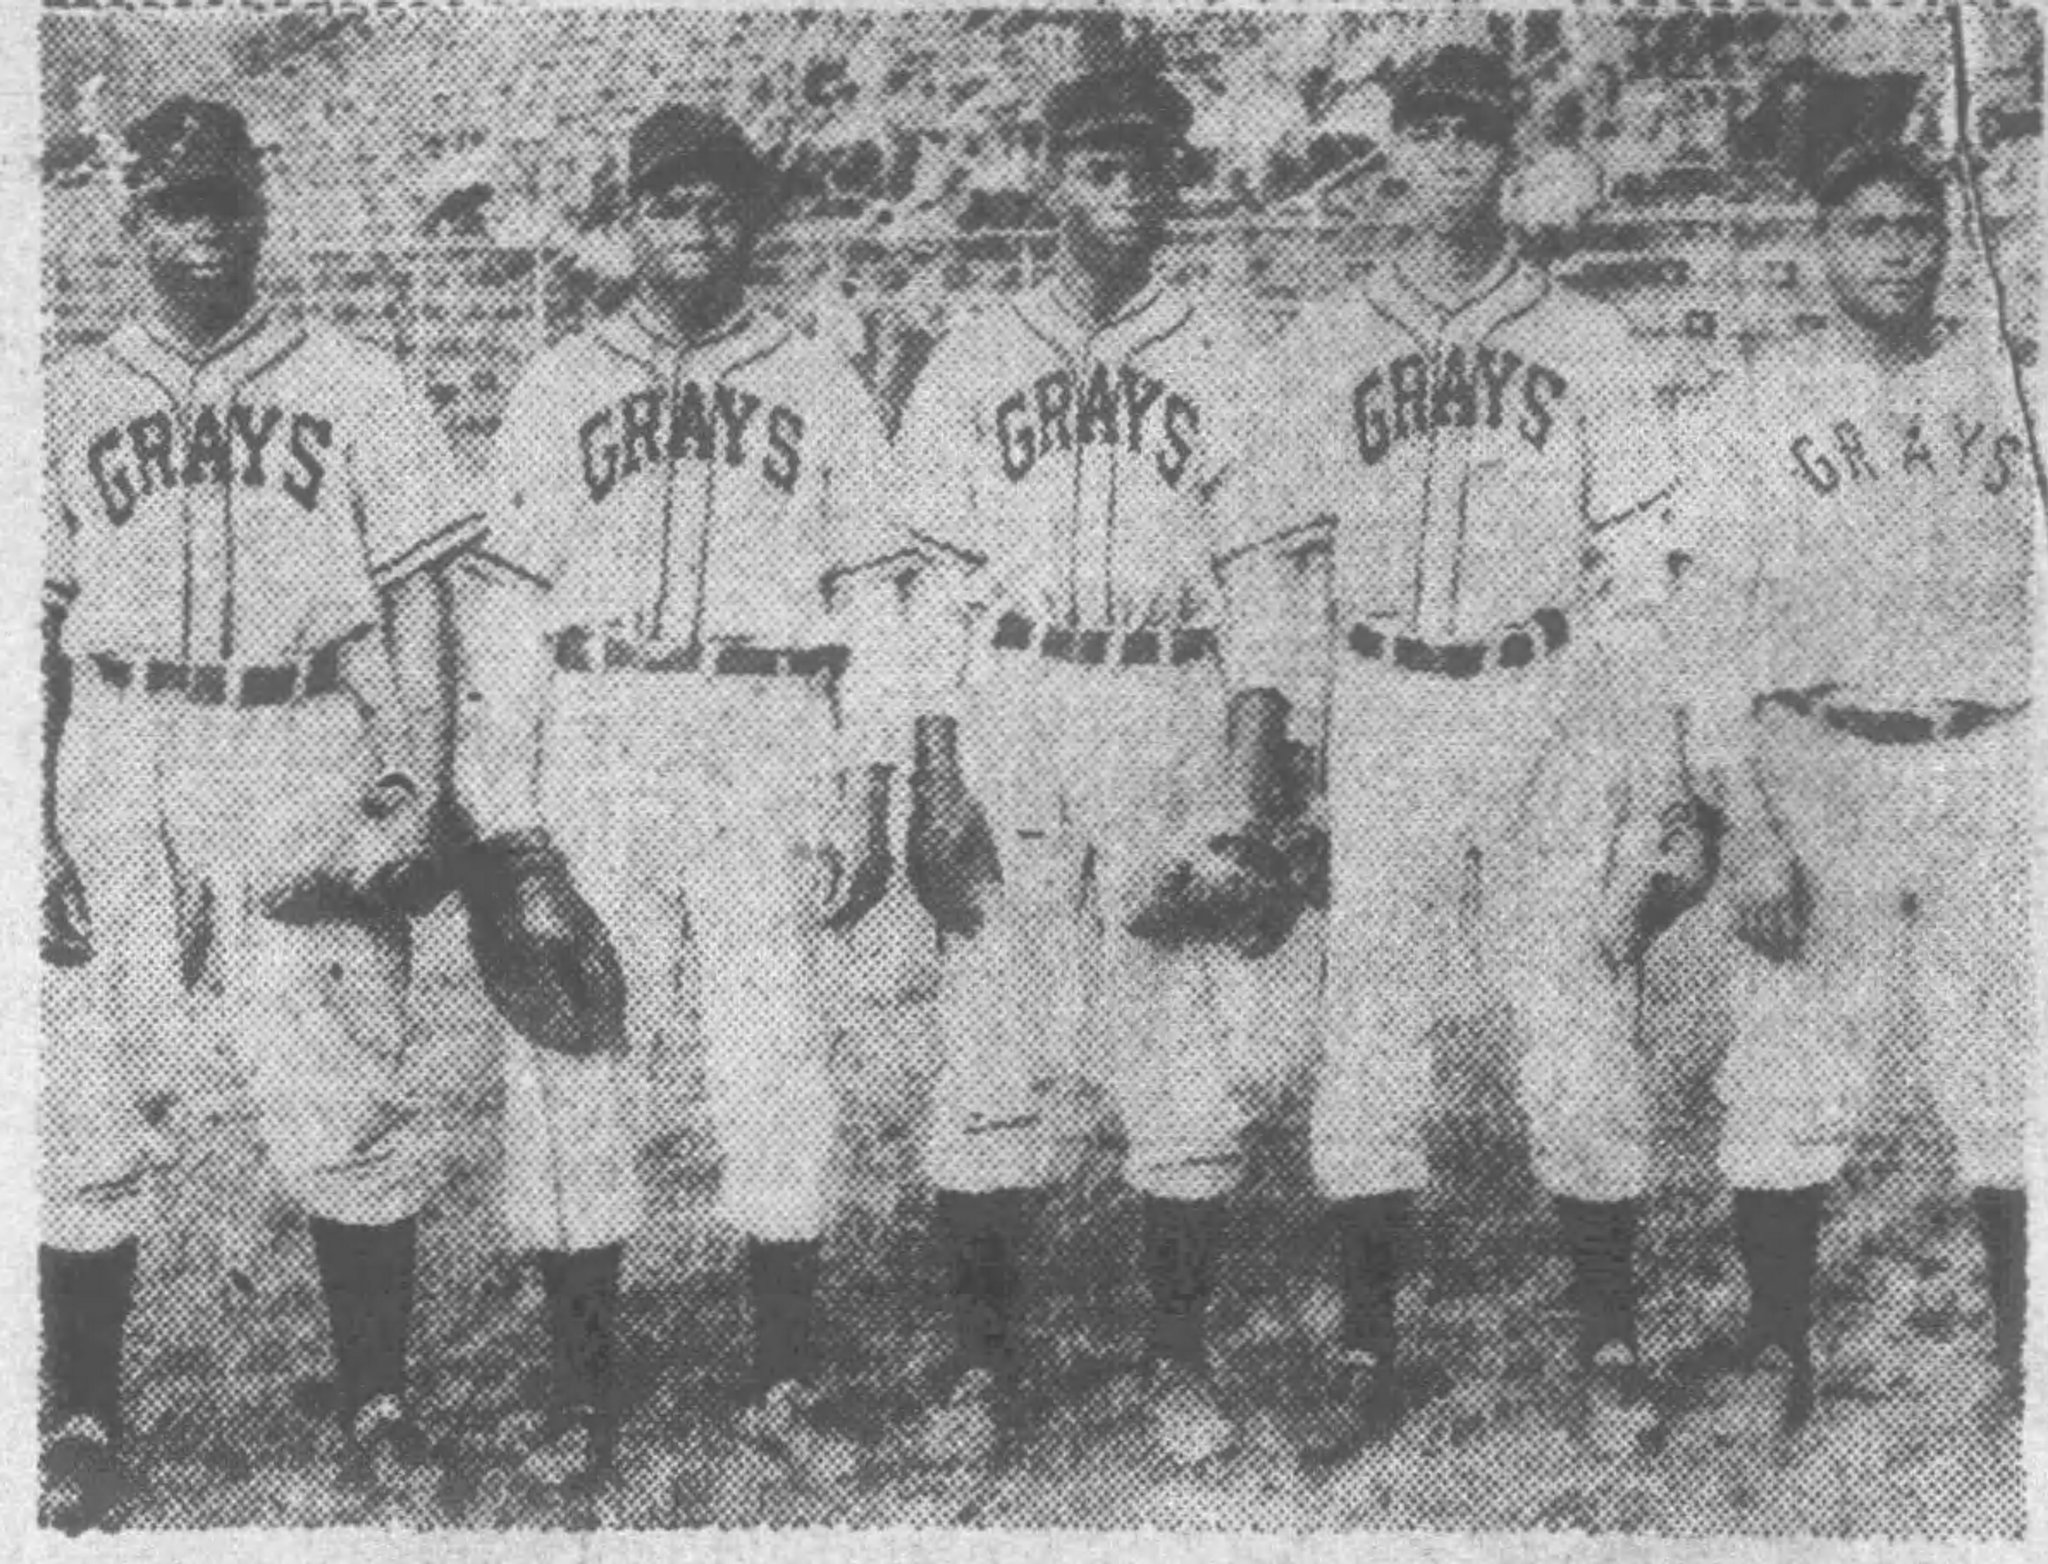 41 year old Buck Leonard 2nd from left, with future @Braves @Cubs @Pirates Luis Marquez, Charles Gary, Clarence Bruce, and Sam Bankhead, 1948 @baseballhall @nlbmprez https://t.co/QZhep3nO6F